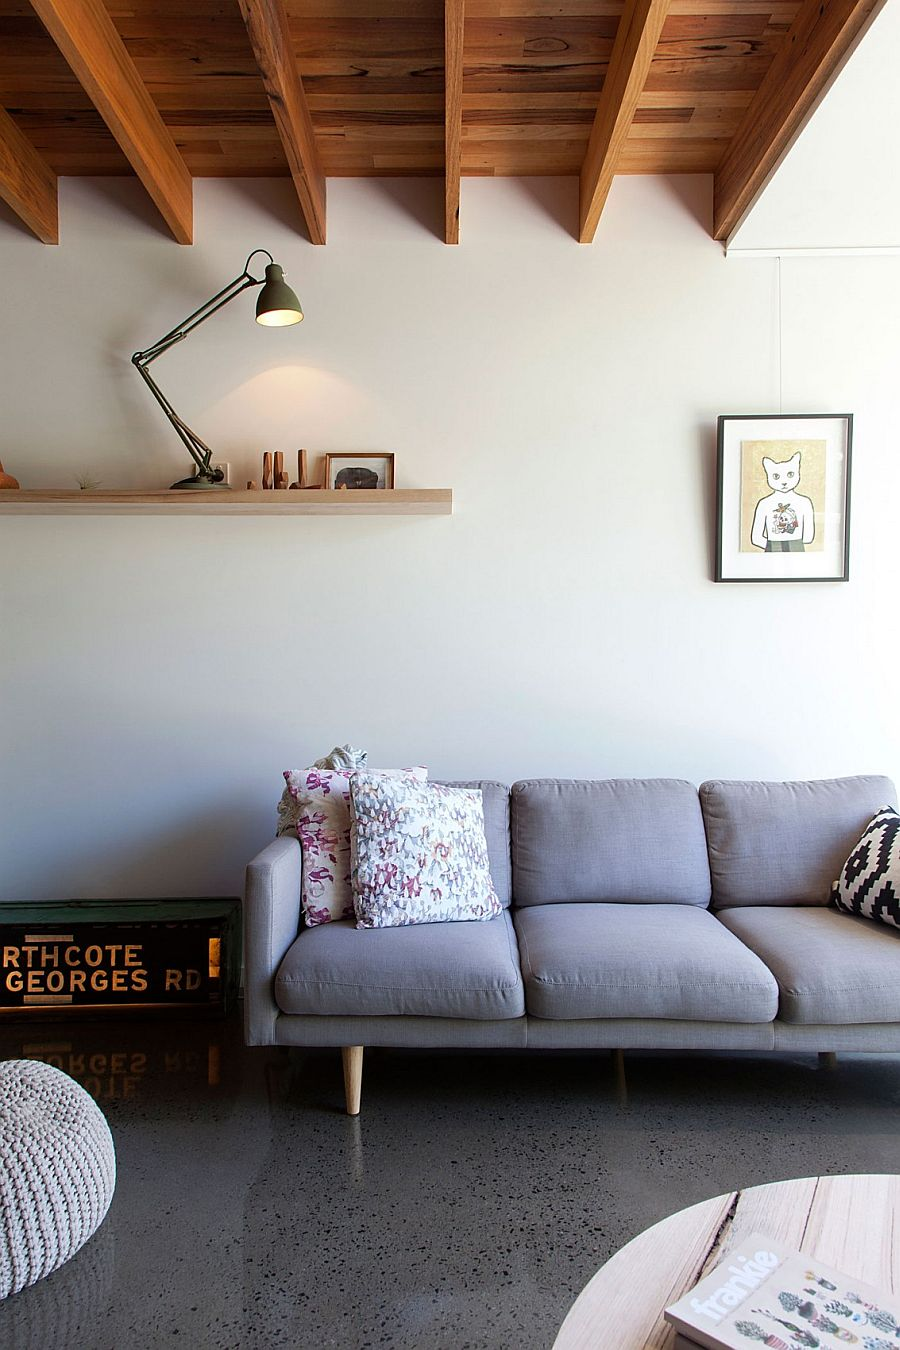 Gray couch in the lving room with a sleek floating shelf in the backdrop